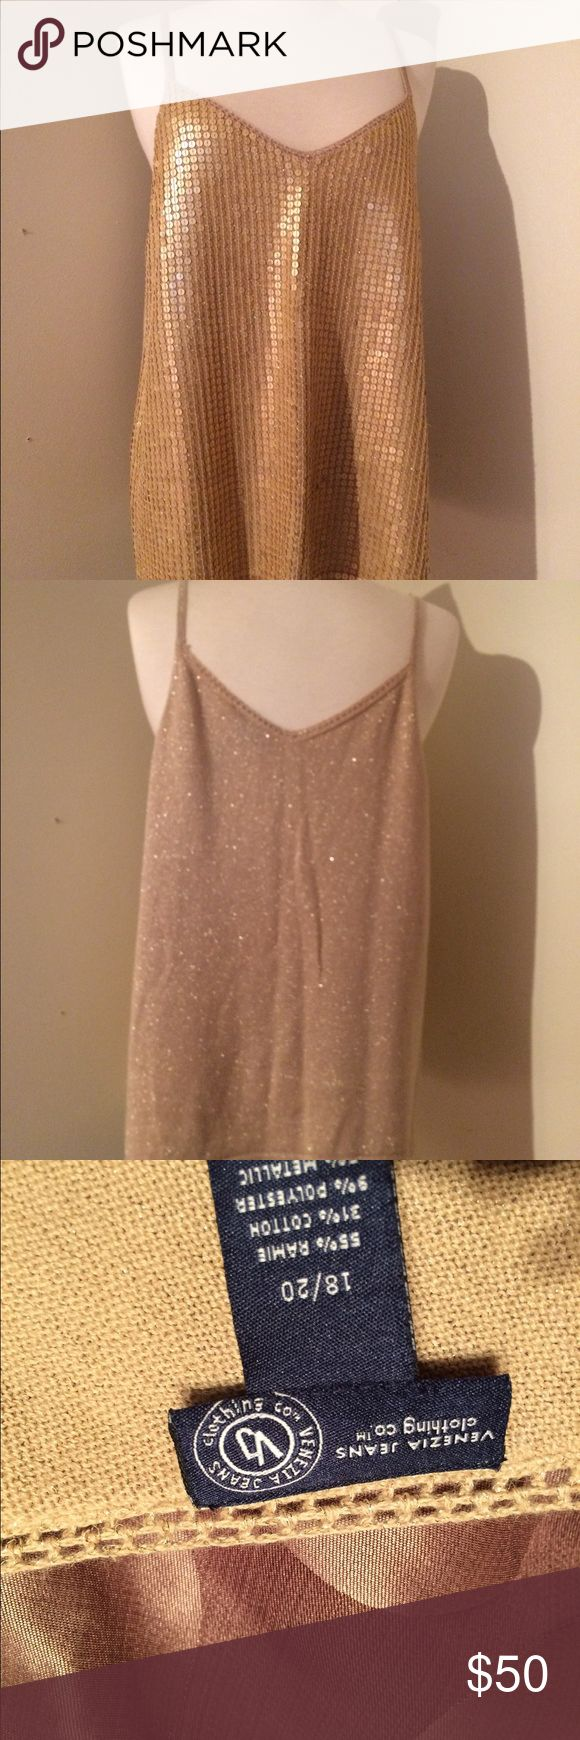 """Sequined Gold Blouse NWOT This is a stunning spaghetti strap top that glistens front and back. From elegant wear to casual, this sequined top is perfect for all occasions. It is an """"OMG"""" beautiful top. Some sequins may flip up, simply swipe hand downward all good. No snags or loose sequins. Camisole style top. Size is an 18/20 Venezia Jean Clothing co. Tops Camisoles"""